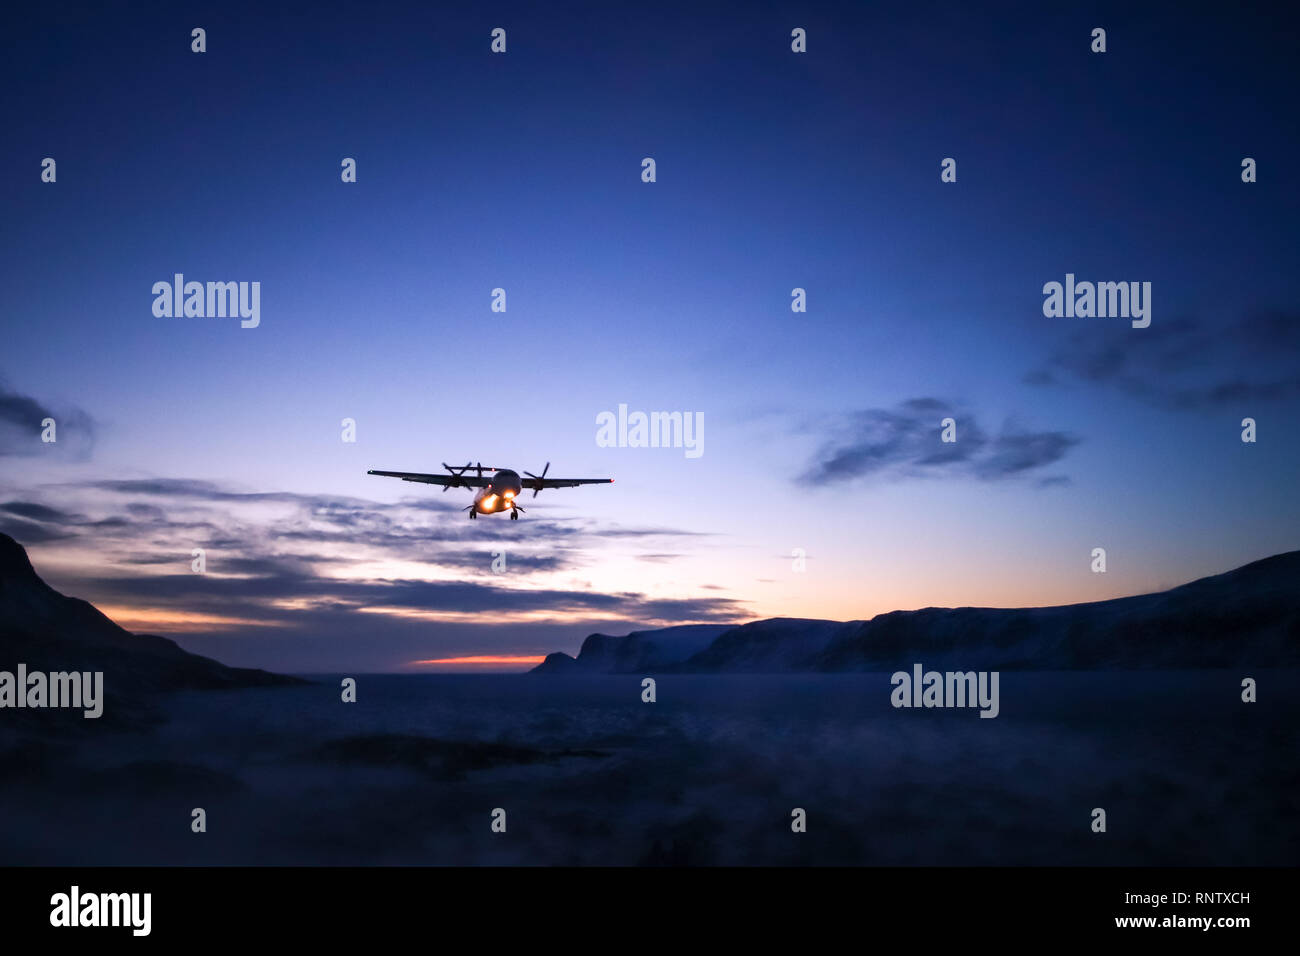 Plane coming into land at Pangnirtung Airport during a winter sunset - Stock Image